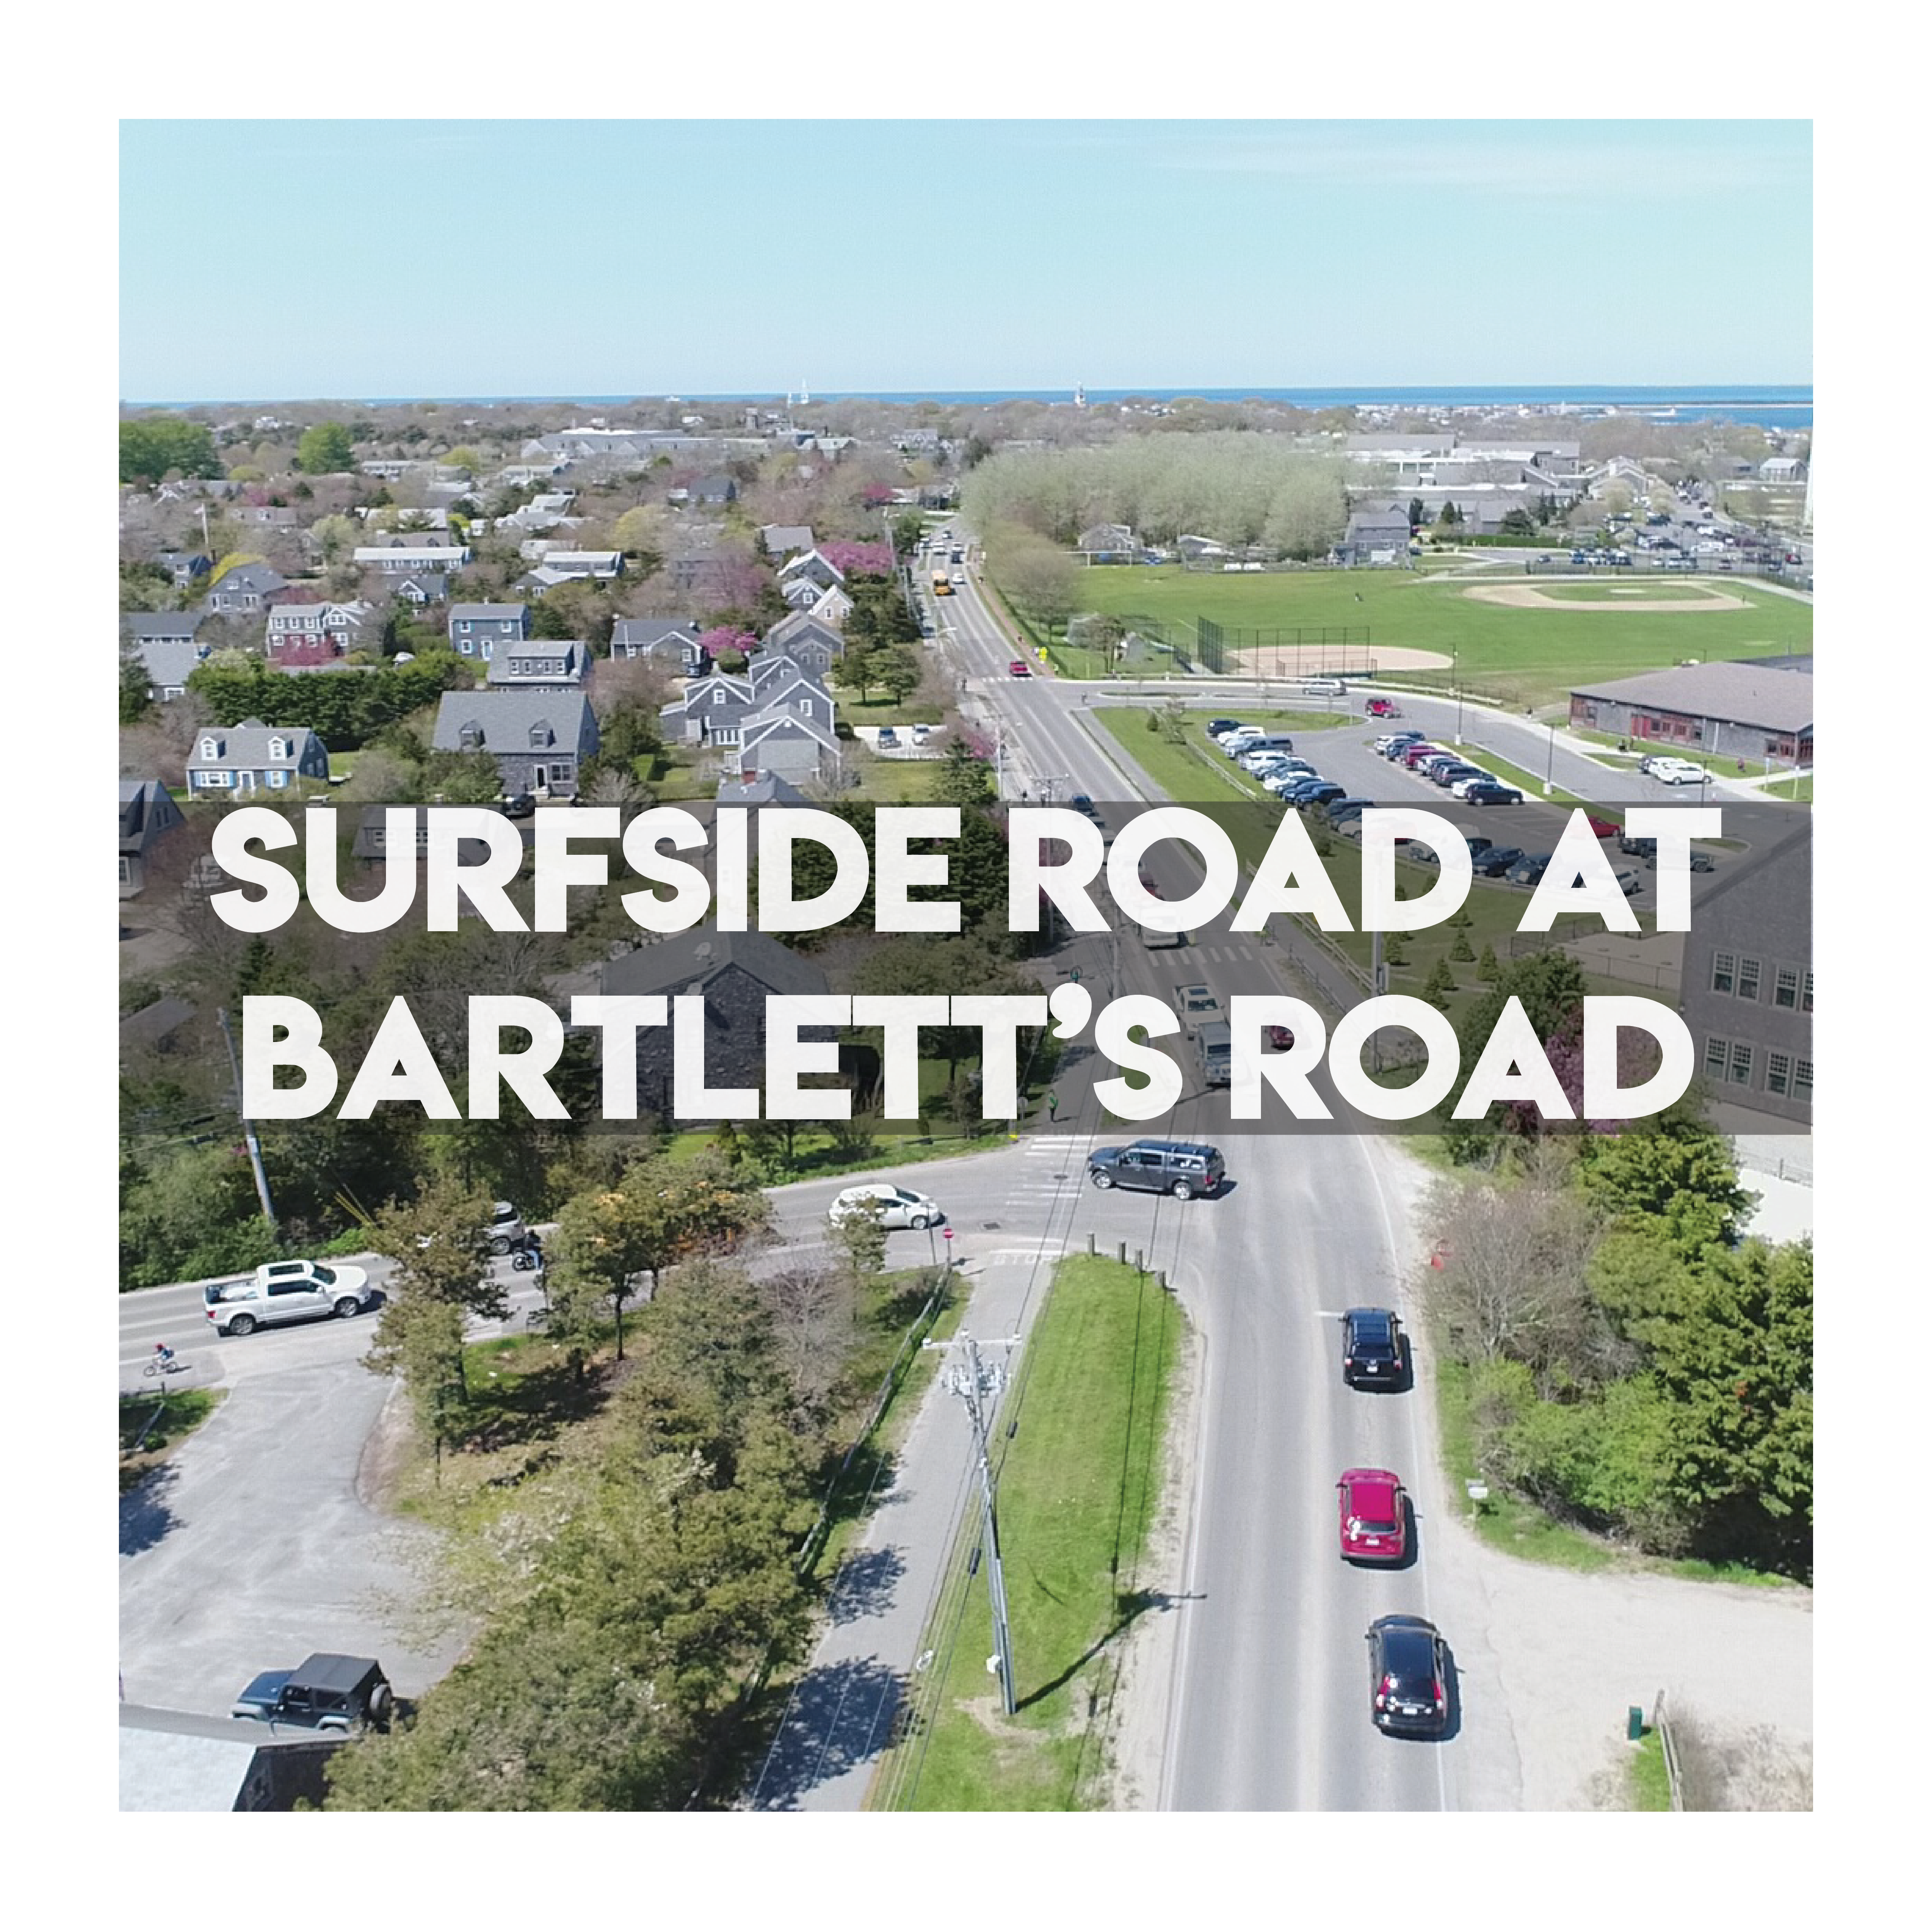 Surfside rd at bartletts rd